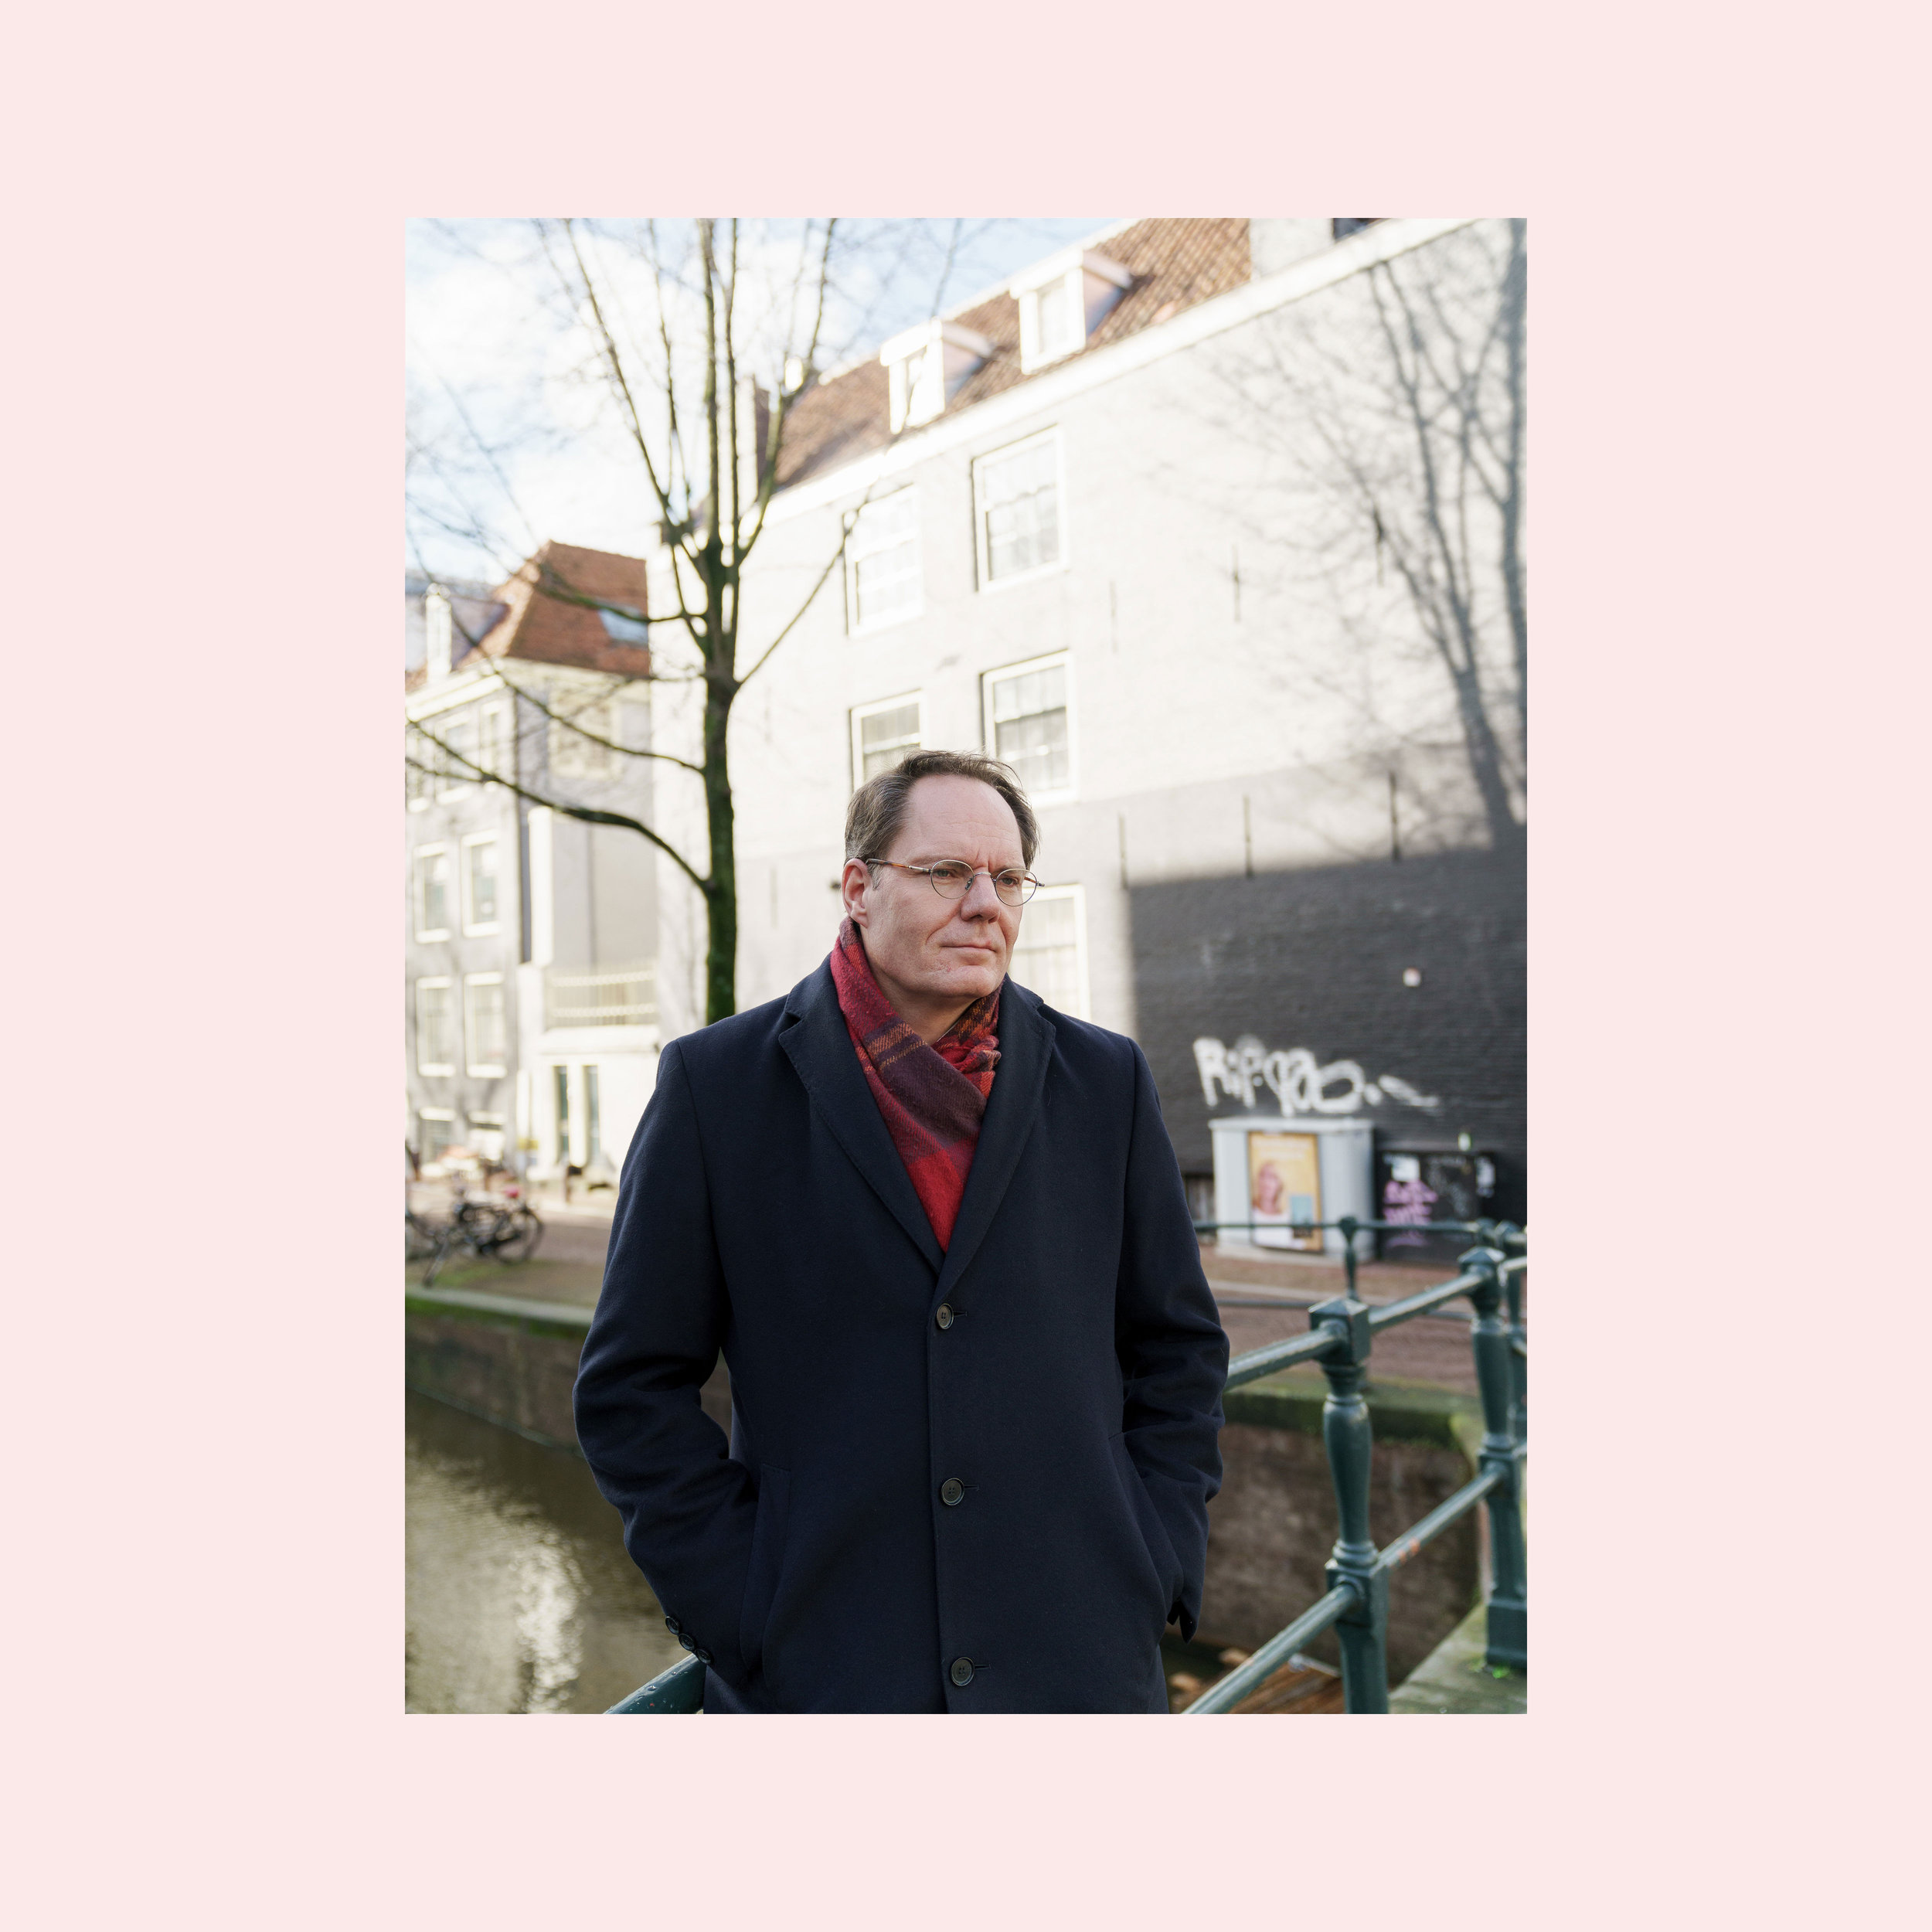 Udo Kock Debuty Mayor od Amsterdam for The New York Times.